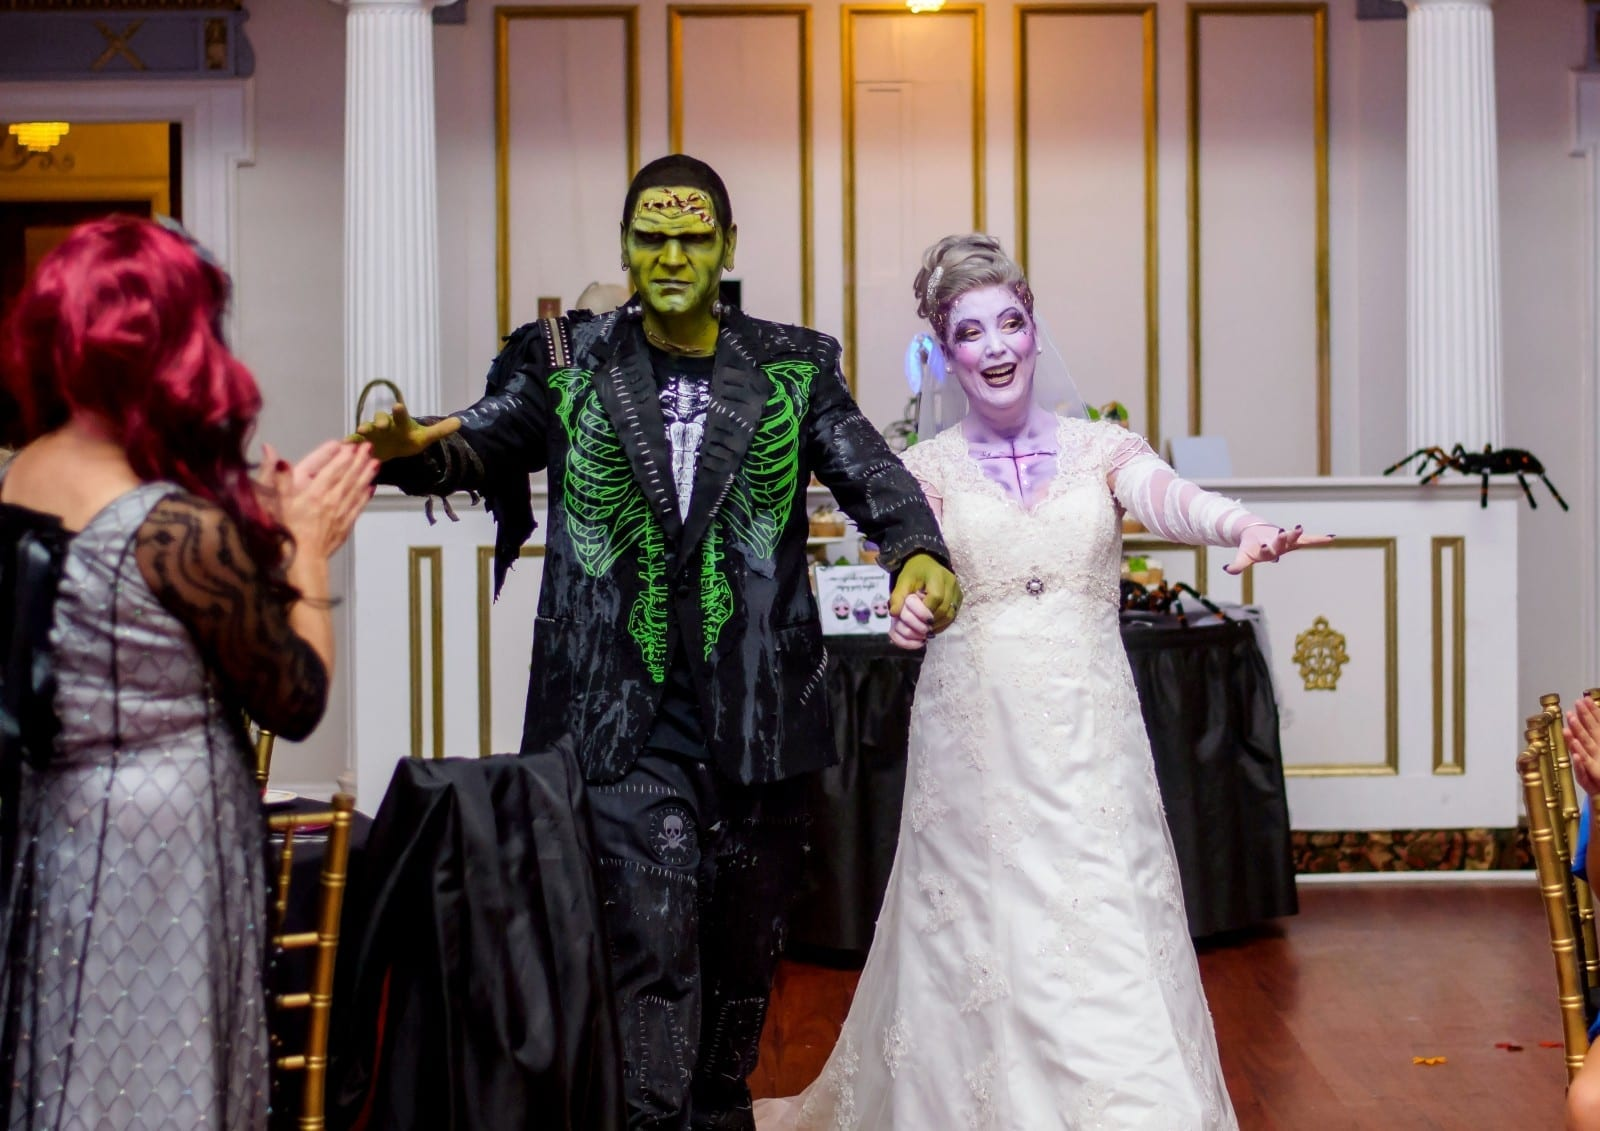 Halloween-Mad Couple Took Their Obsession With The Haunted Holiday To The Next Level – By Making It The Theme Of Their Wedding!